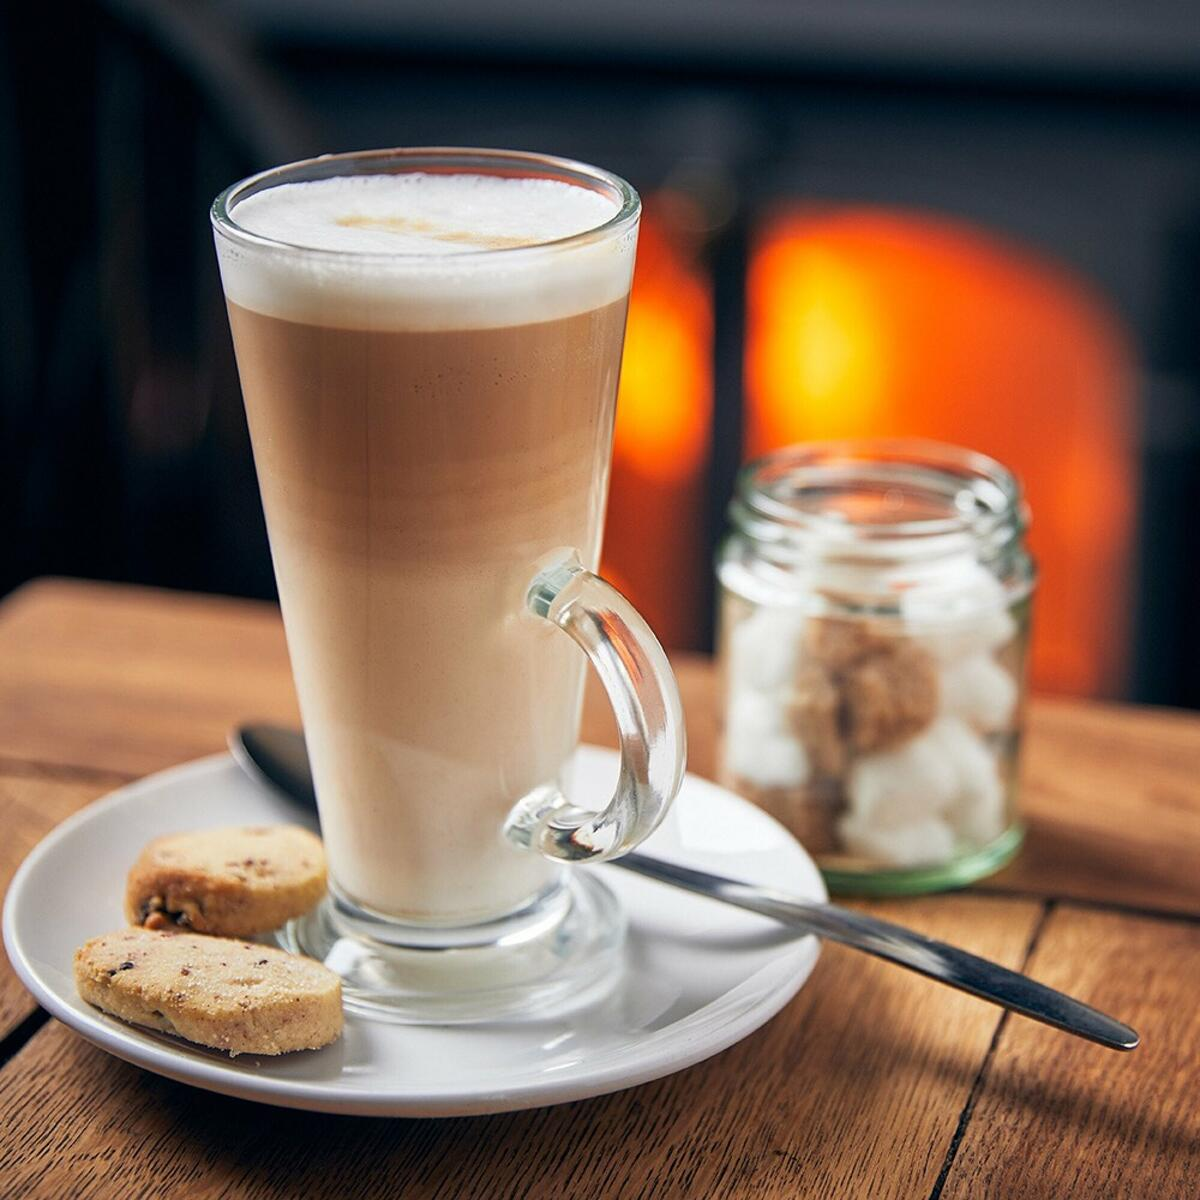 A warm coffee by the fire